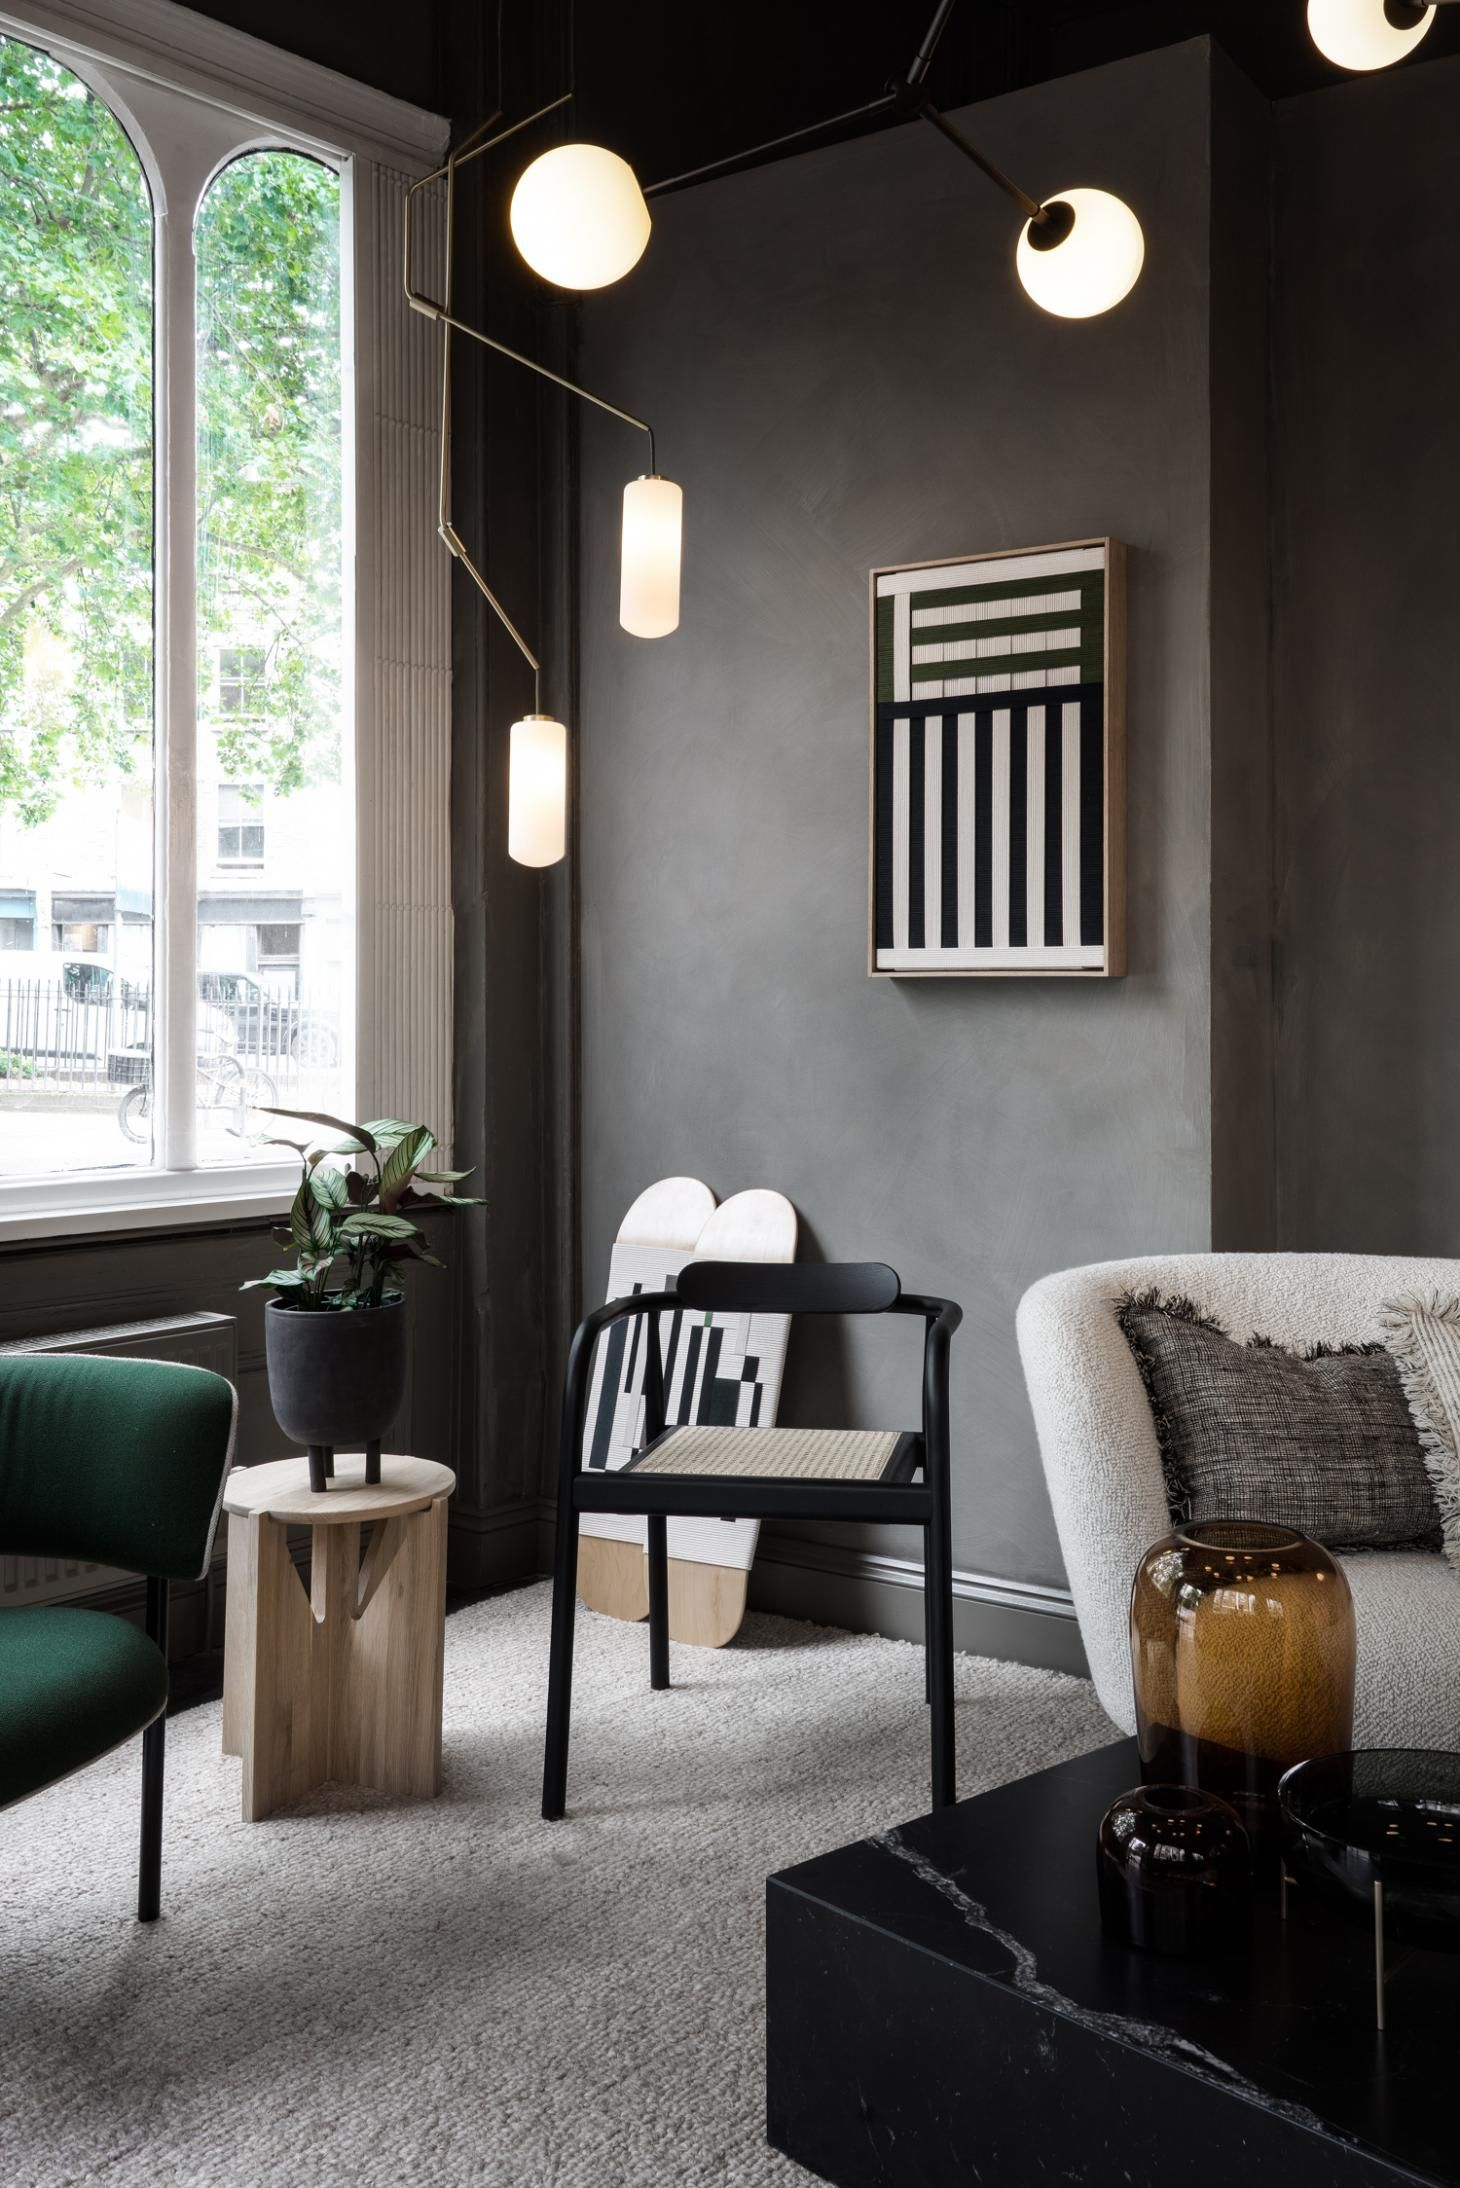 Shoreditch Design Rooms: New Shoreditch Store Celebrates The Physical Experience Of